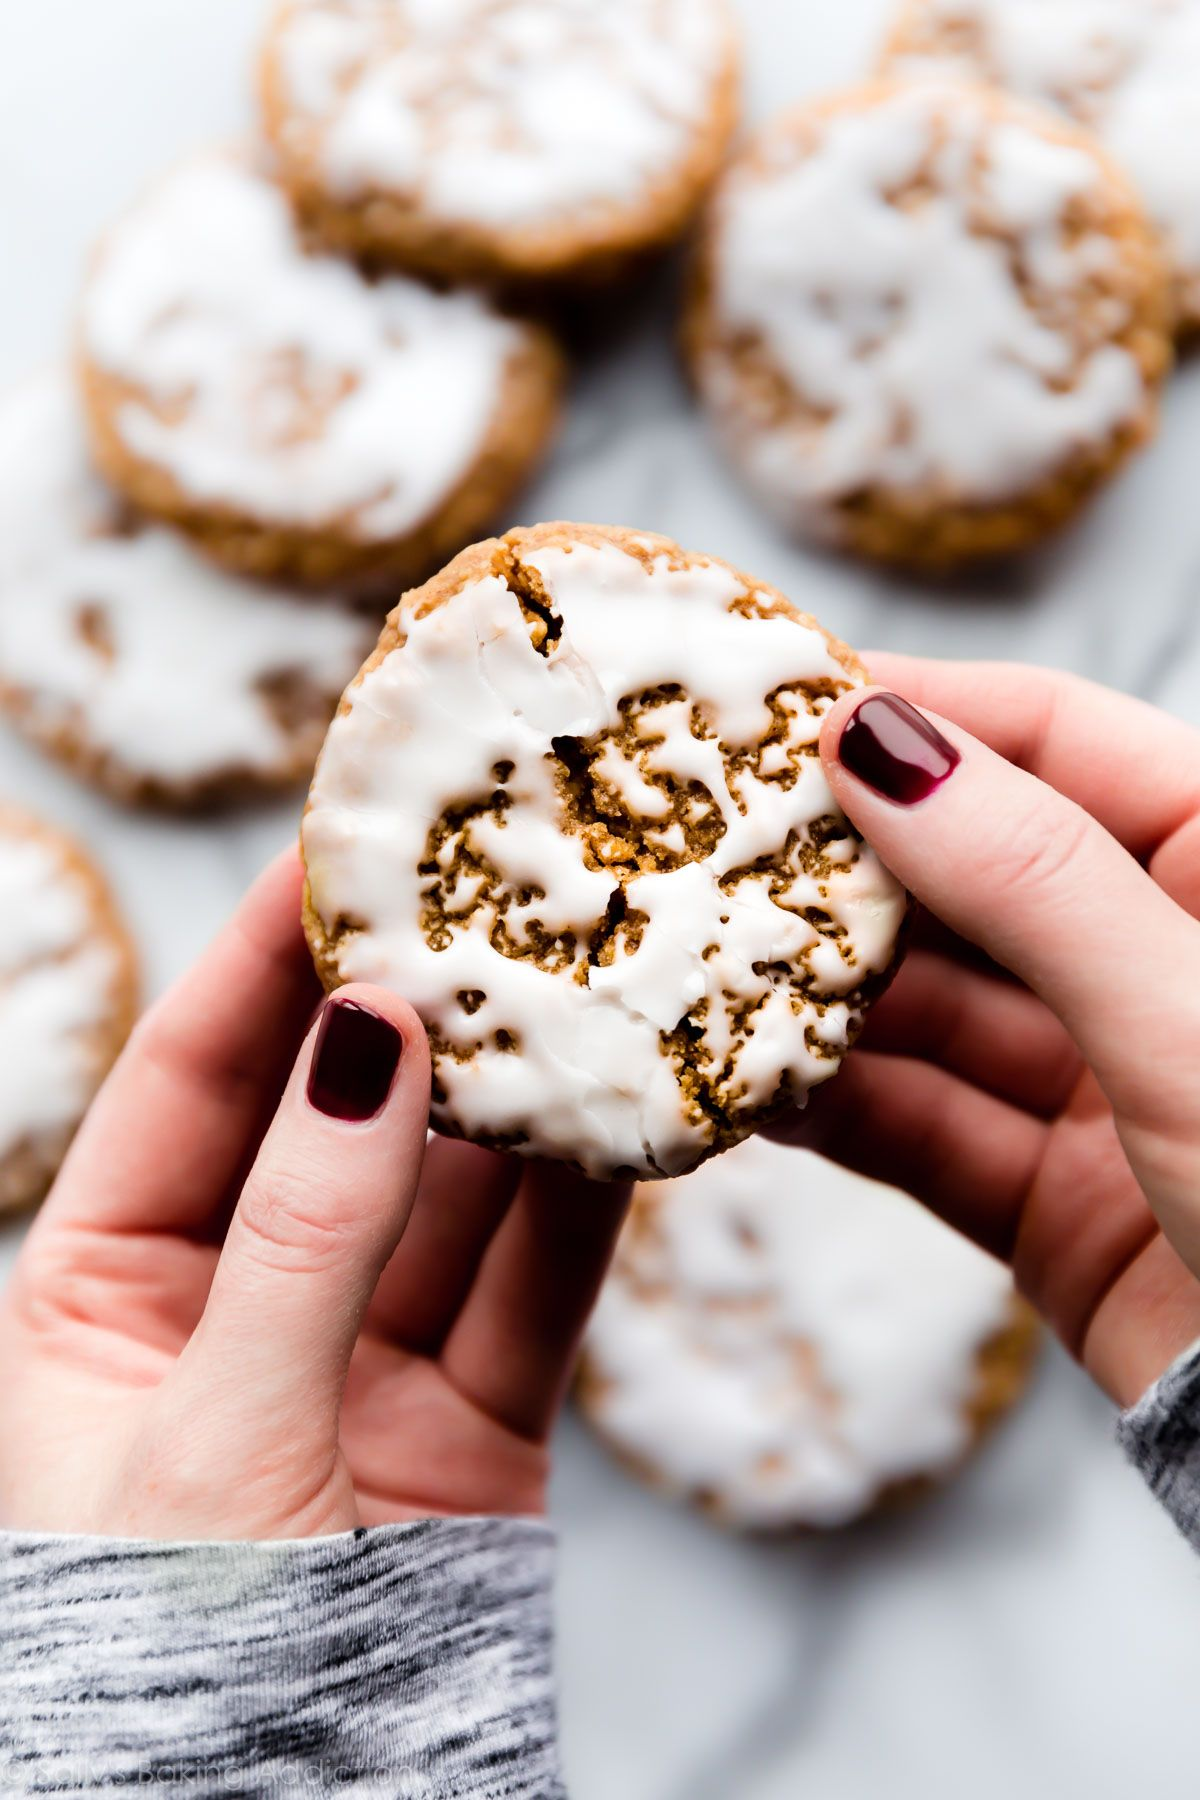 Watch Iced and Spiced Biscuits Recipe video